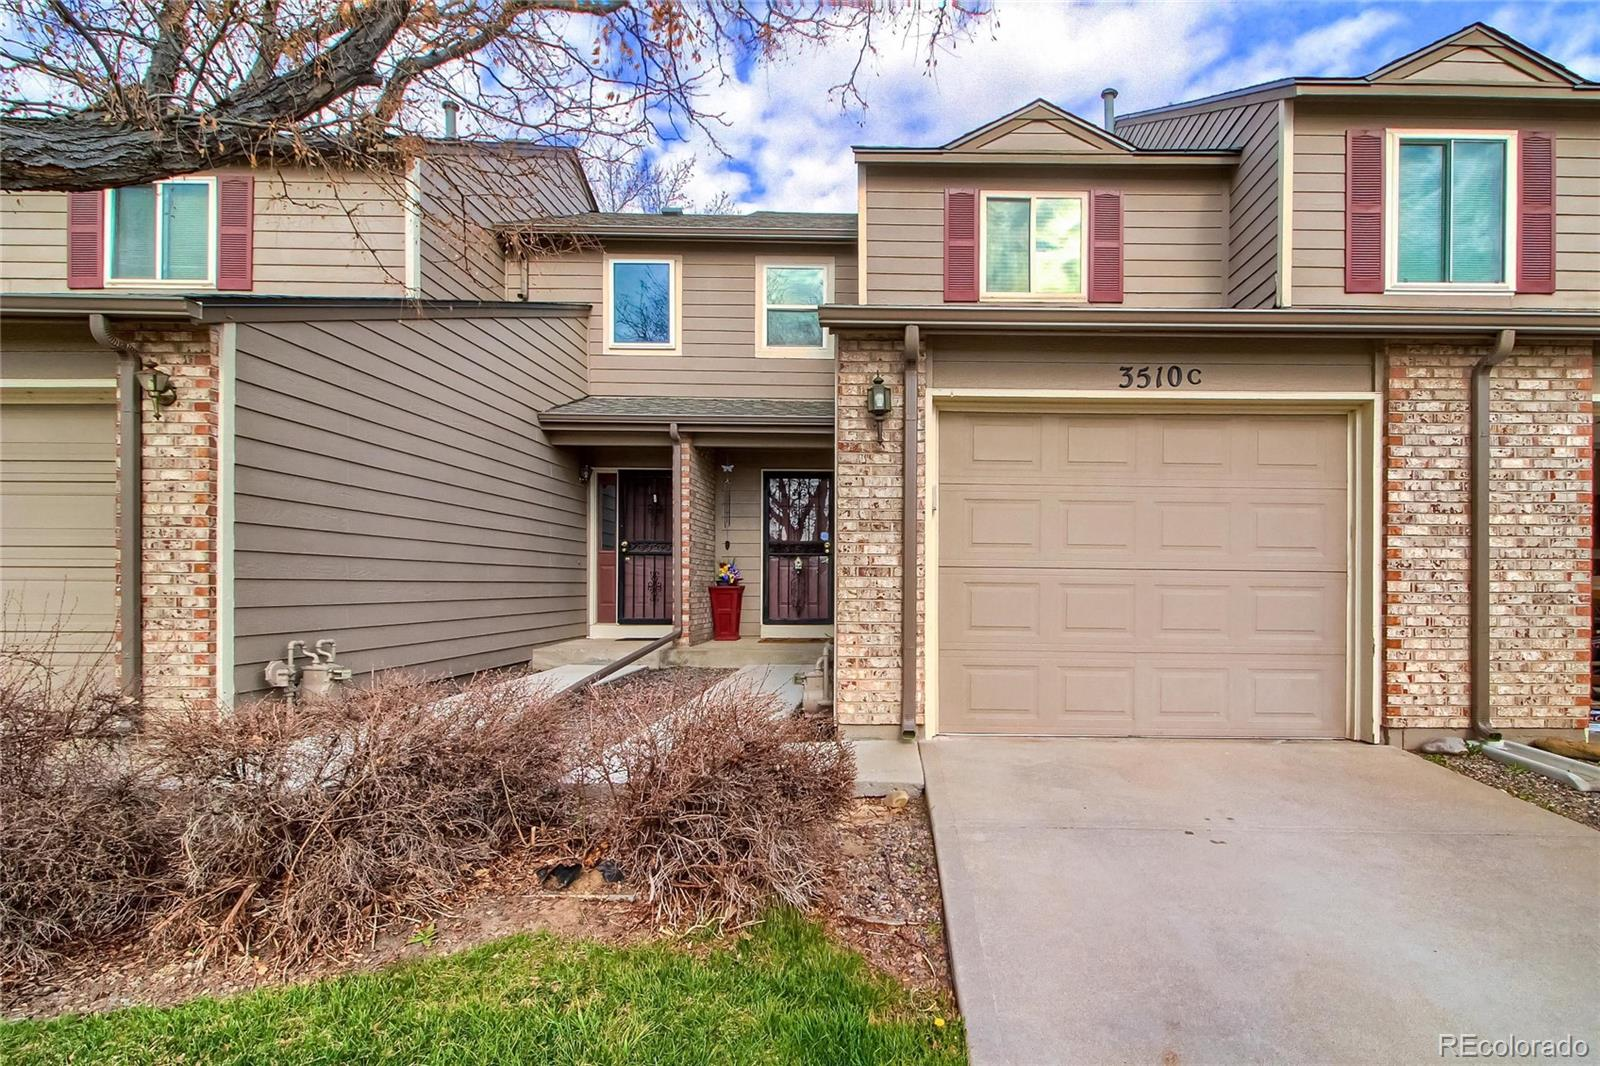 MLS# 3641043 - 2 - 3510 S Telluride Circle #C, Aurora, CO 80013